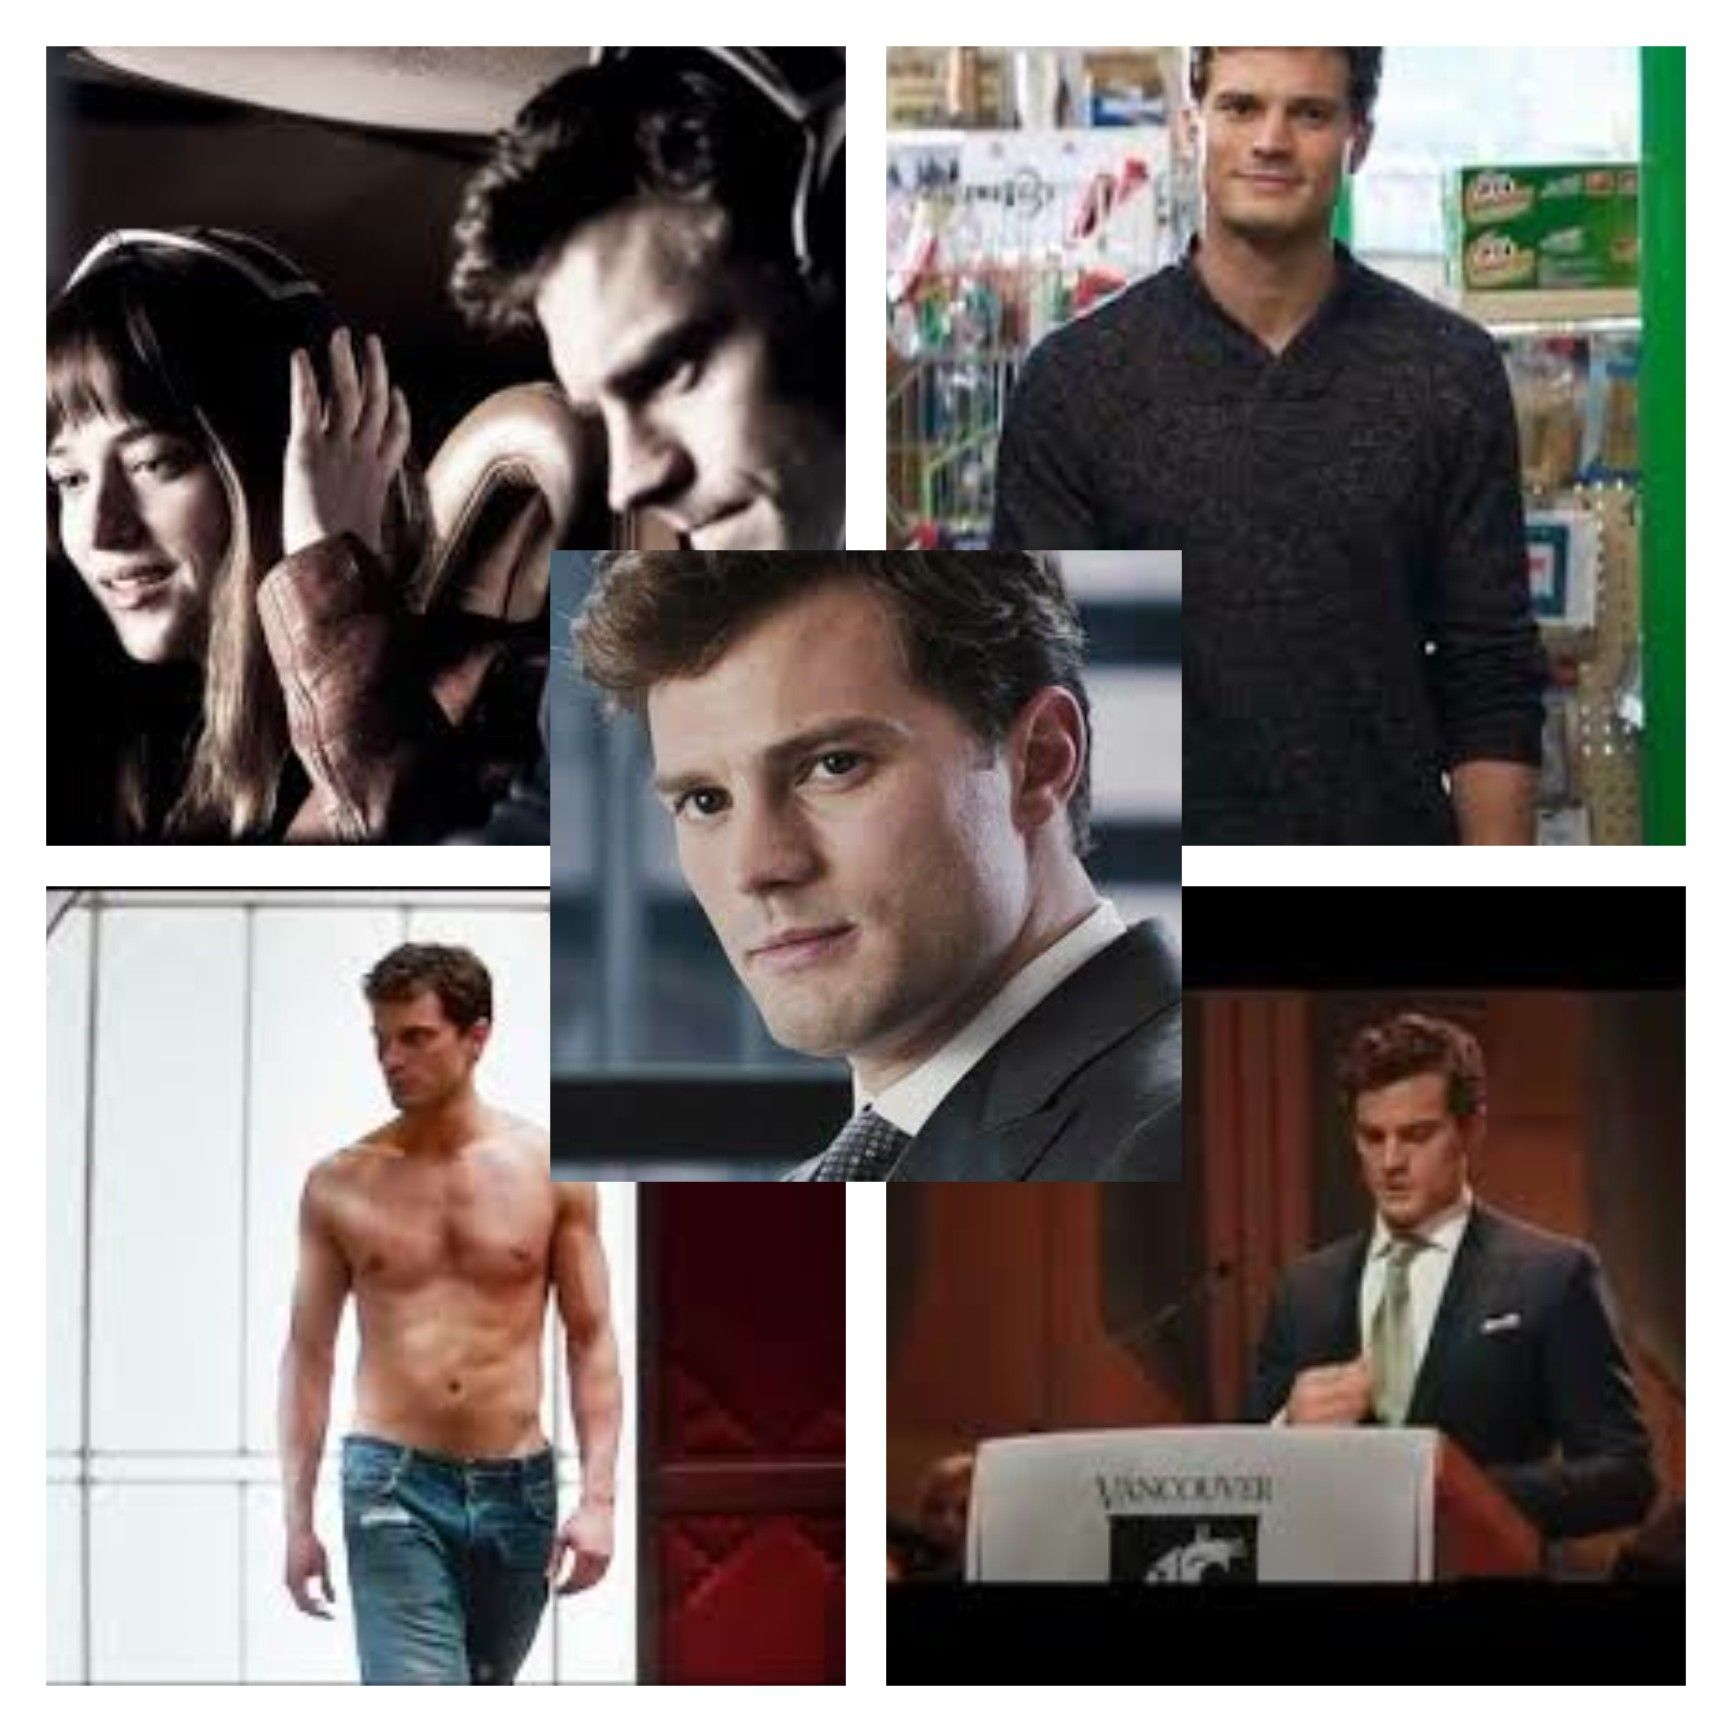 Oh I exercise control in all things Miss Steele.